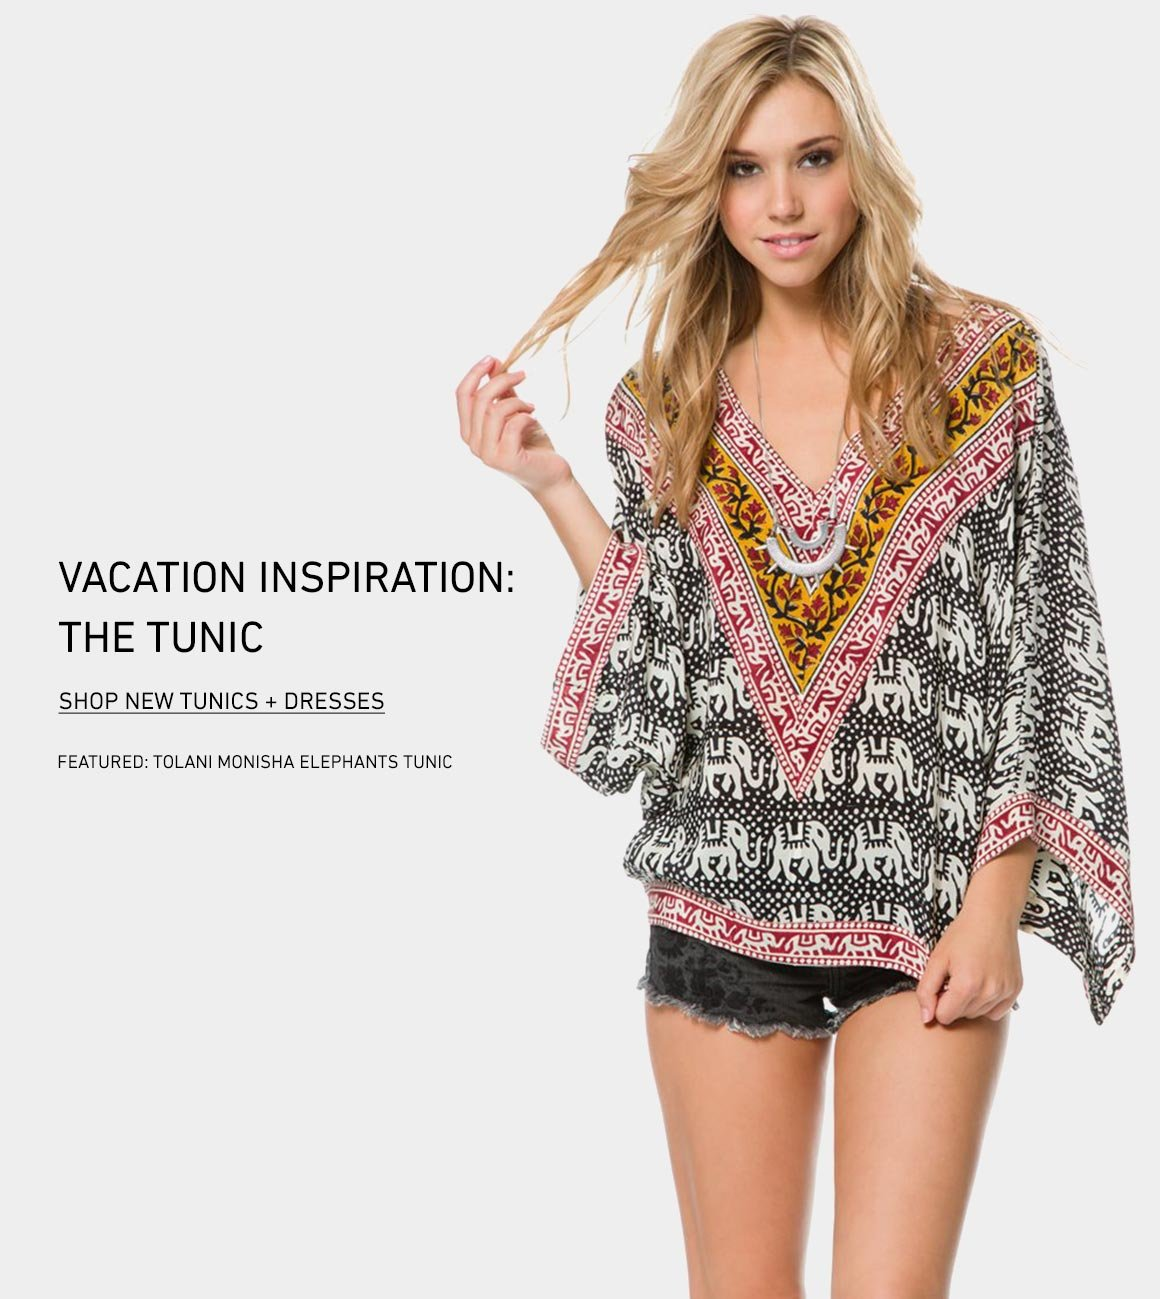 Vacation Inspo: New Tunics